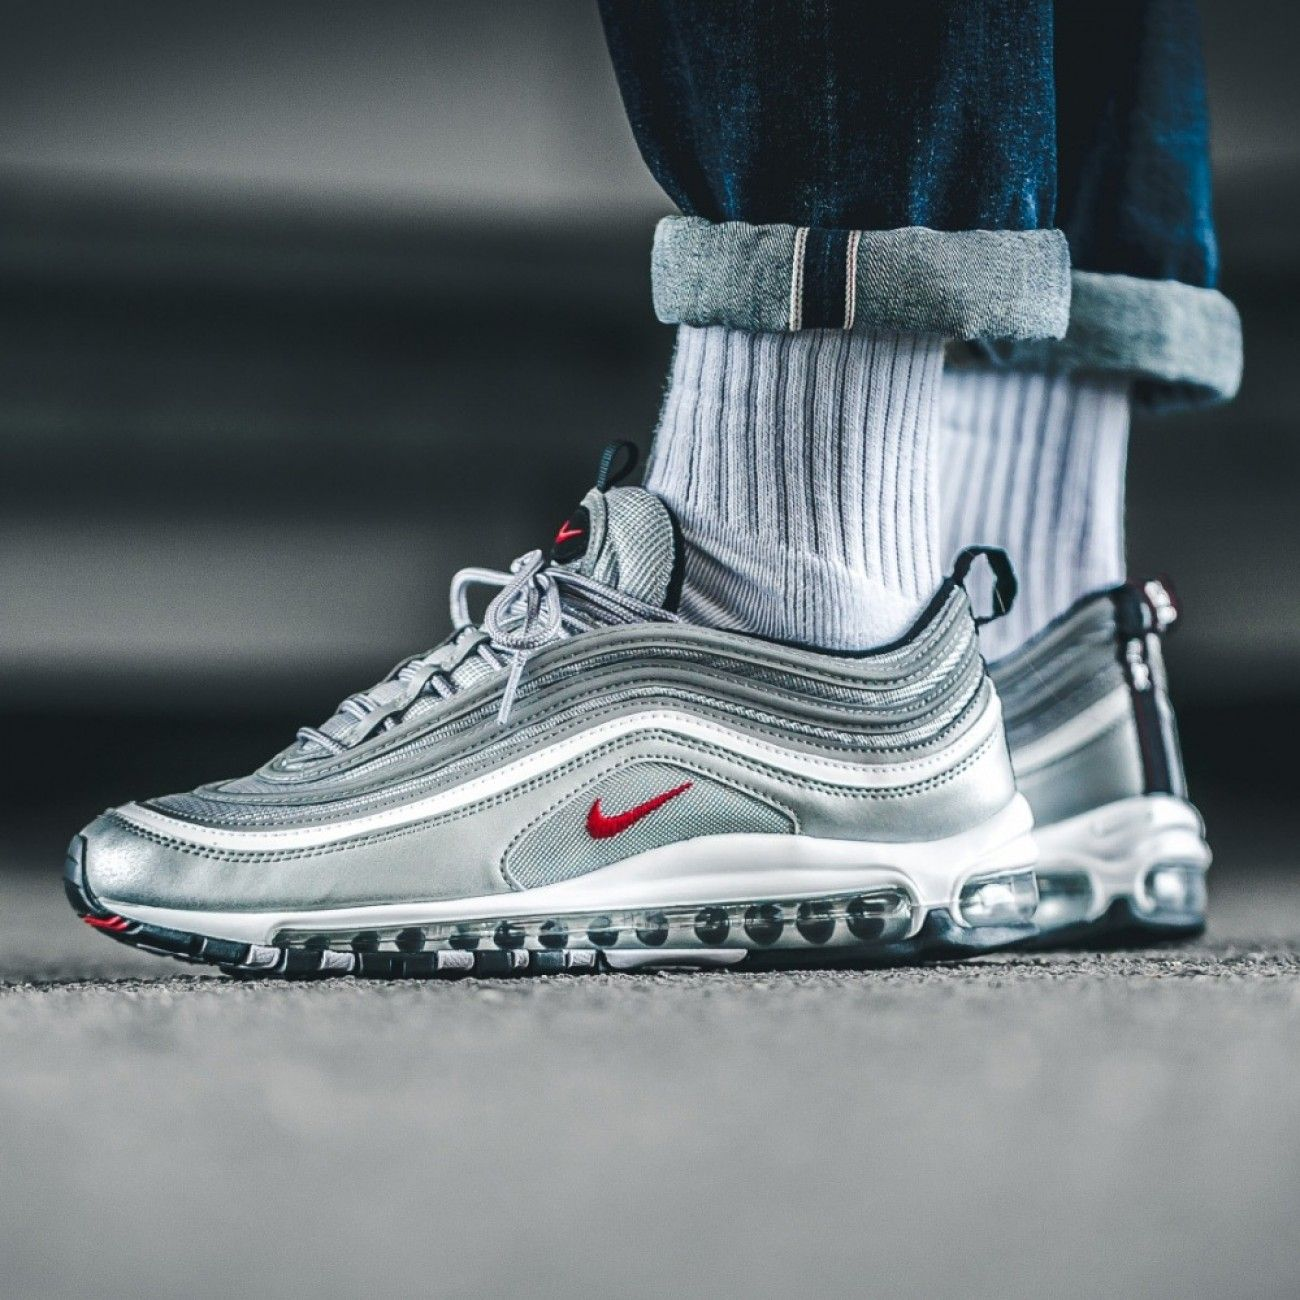 fe2424ea13 Nike Air Max 97 OG QS 'Silver Bullet' in 2019 | Shoes | Nike air max ...